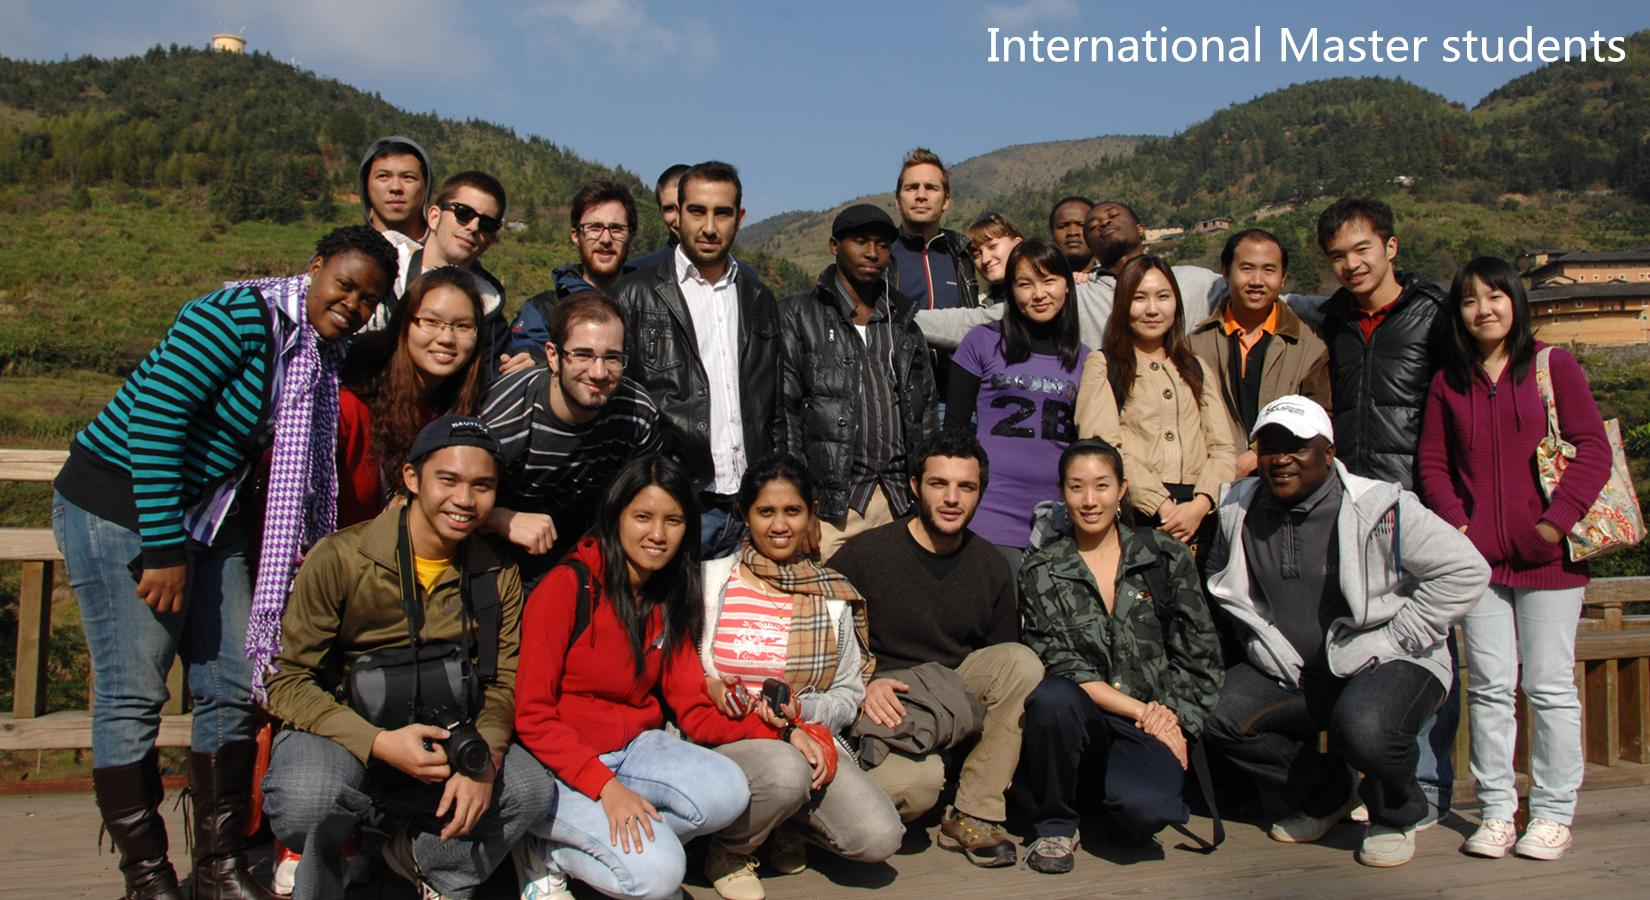 International Master students